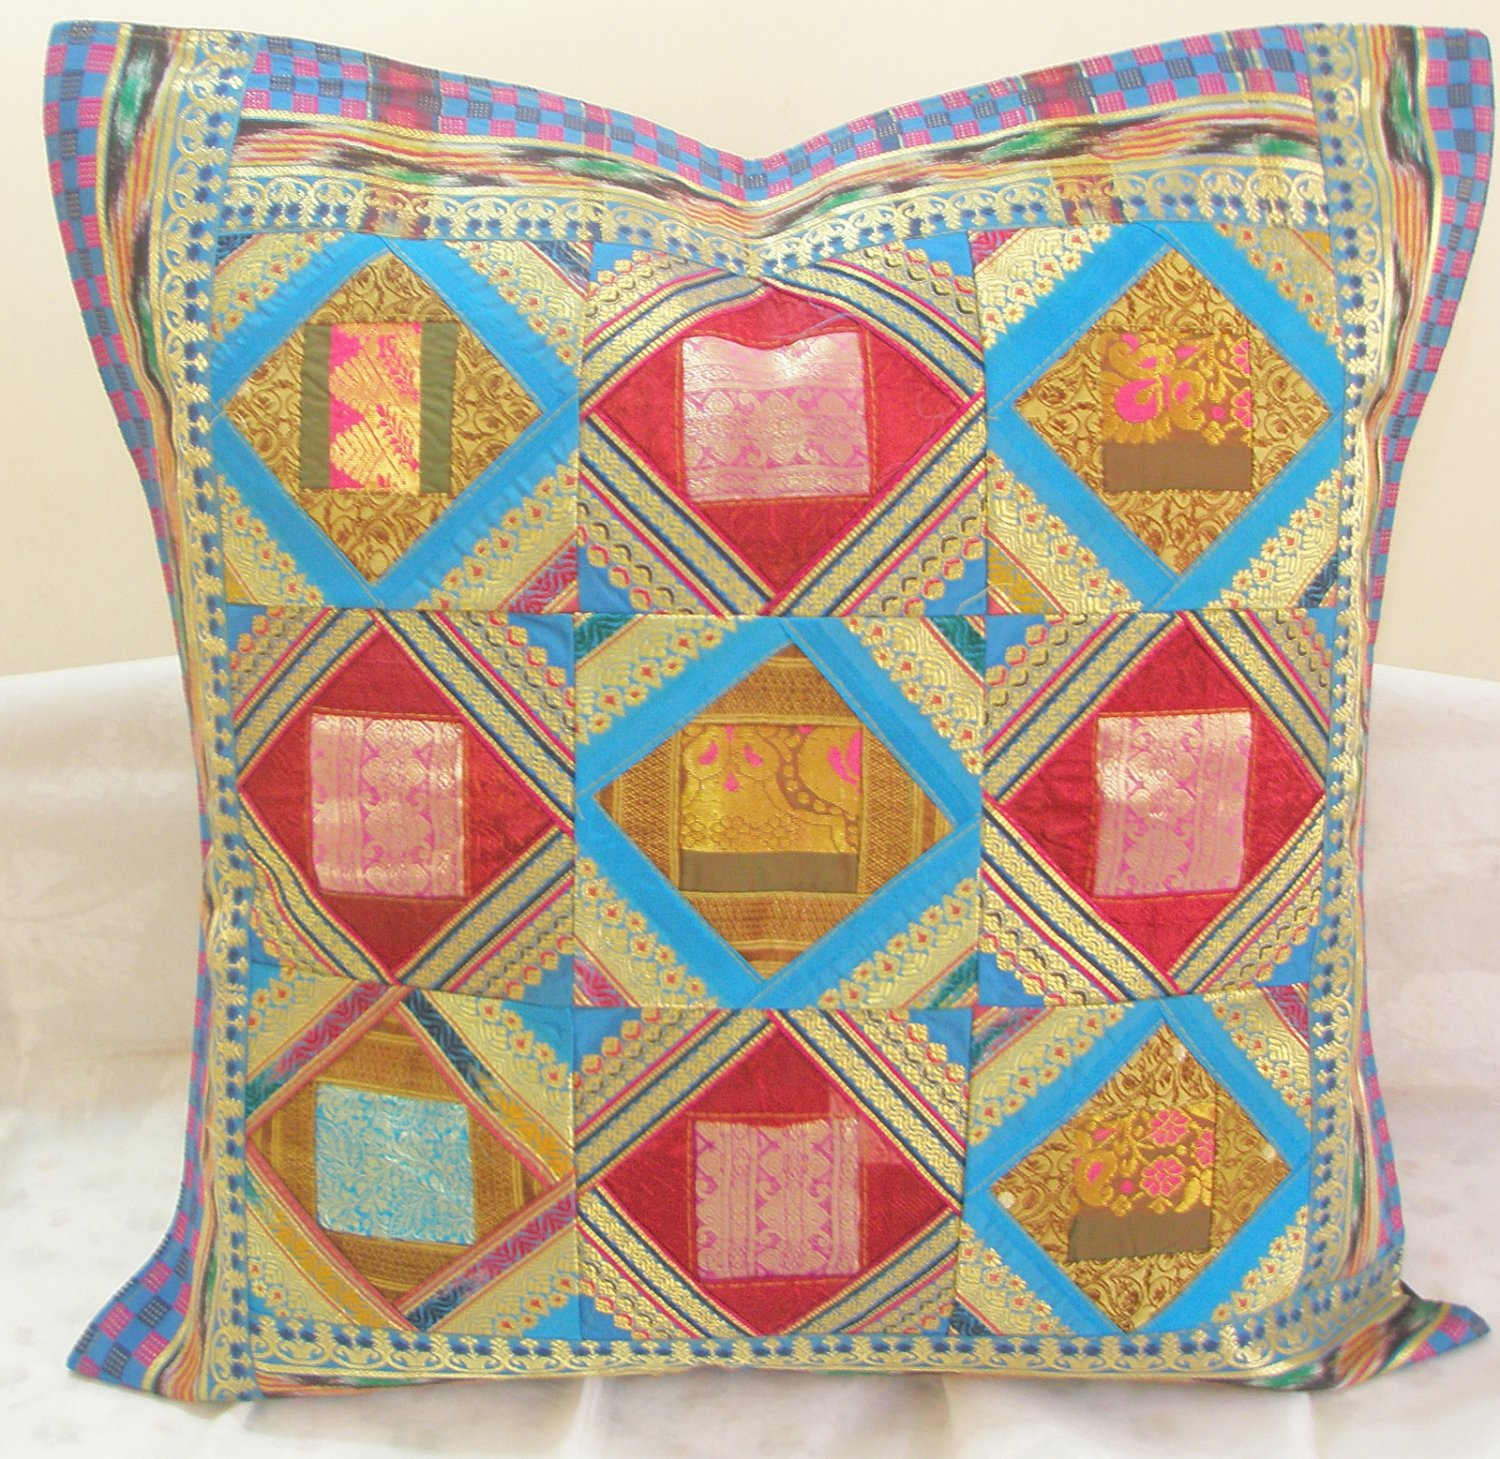 Handmade Patchwork Extra Large Cushion Toss Pillow Covers Sofa Couch